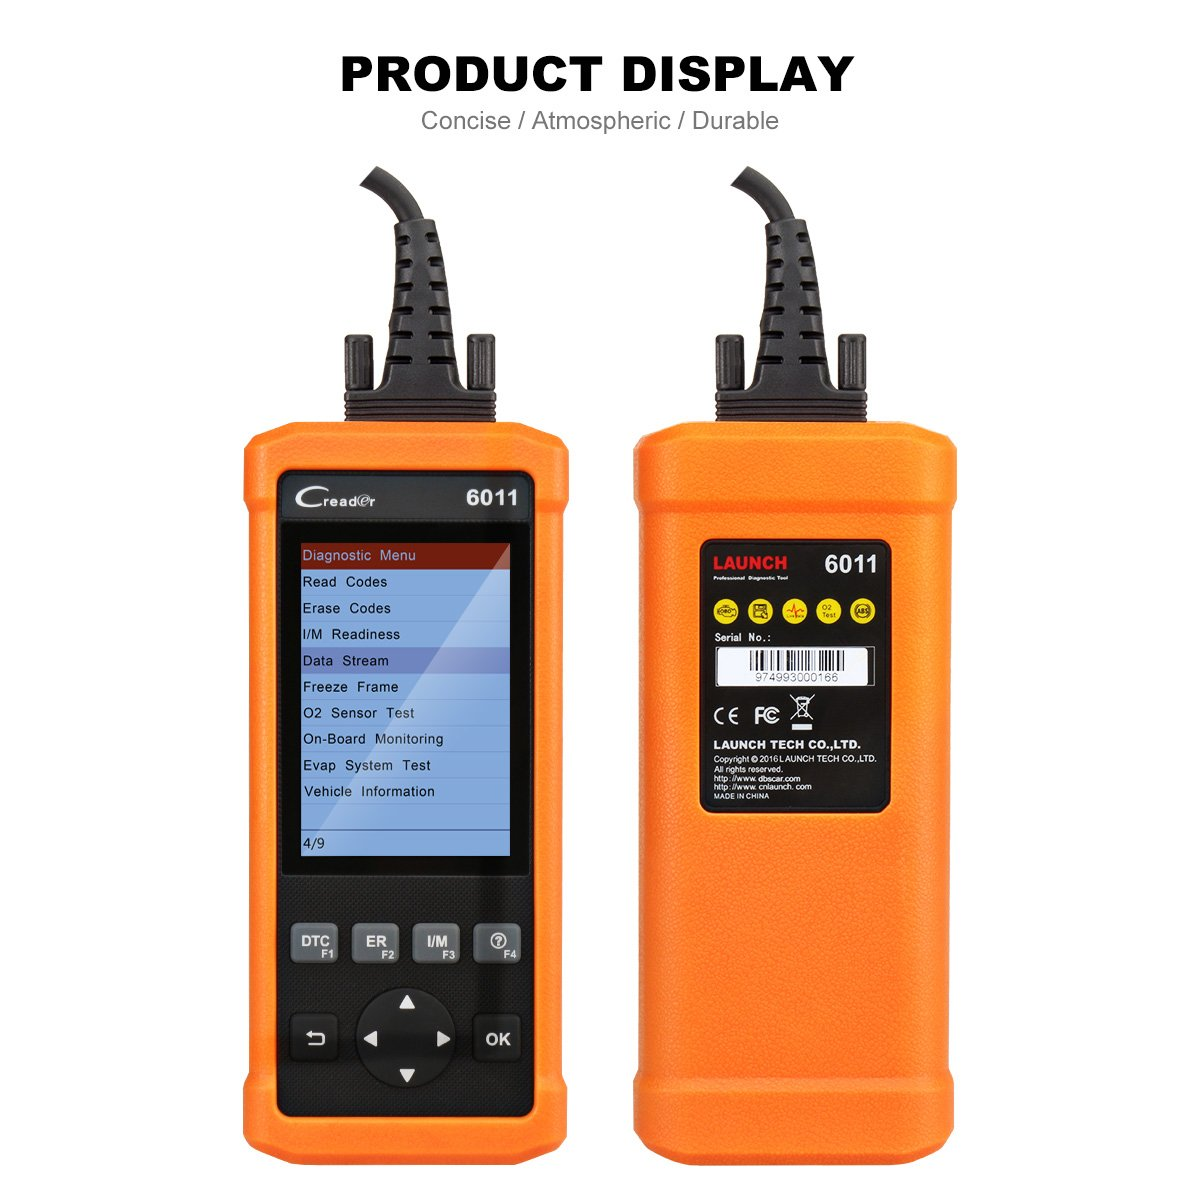 Launch CReader 6011 OBD2 EOBD Scan Tool Professional Auto ABS SRS Diagnostic Scan Tool Universal OBD2 Scanner Car Engine Fault Code Reader for OBDII Standard Vehicle by Launch (Image #3)